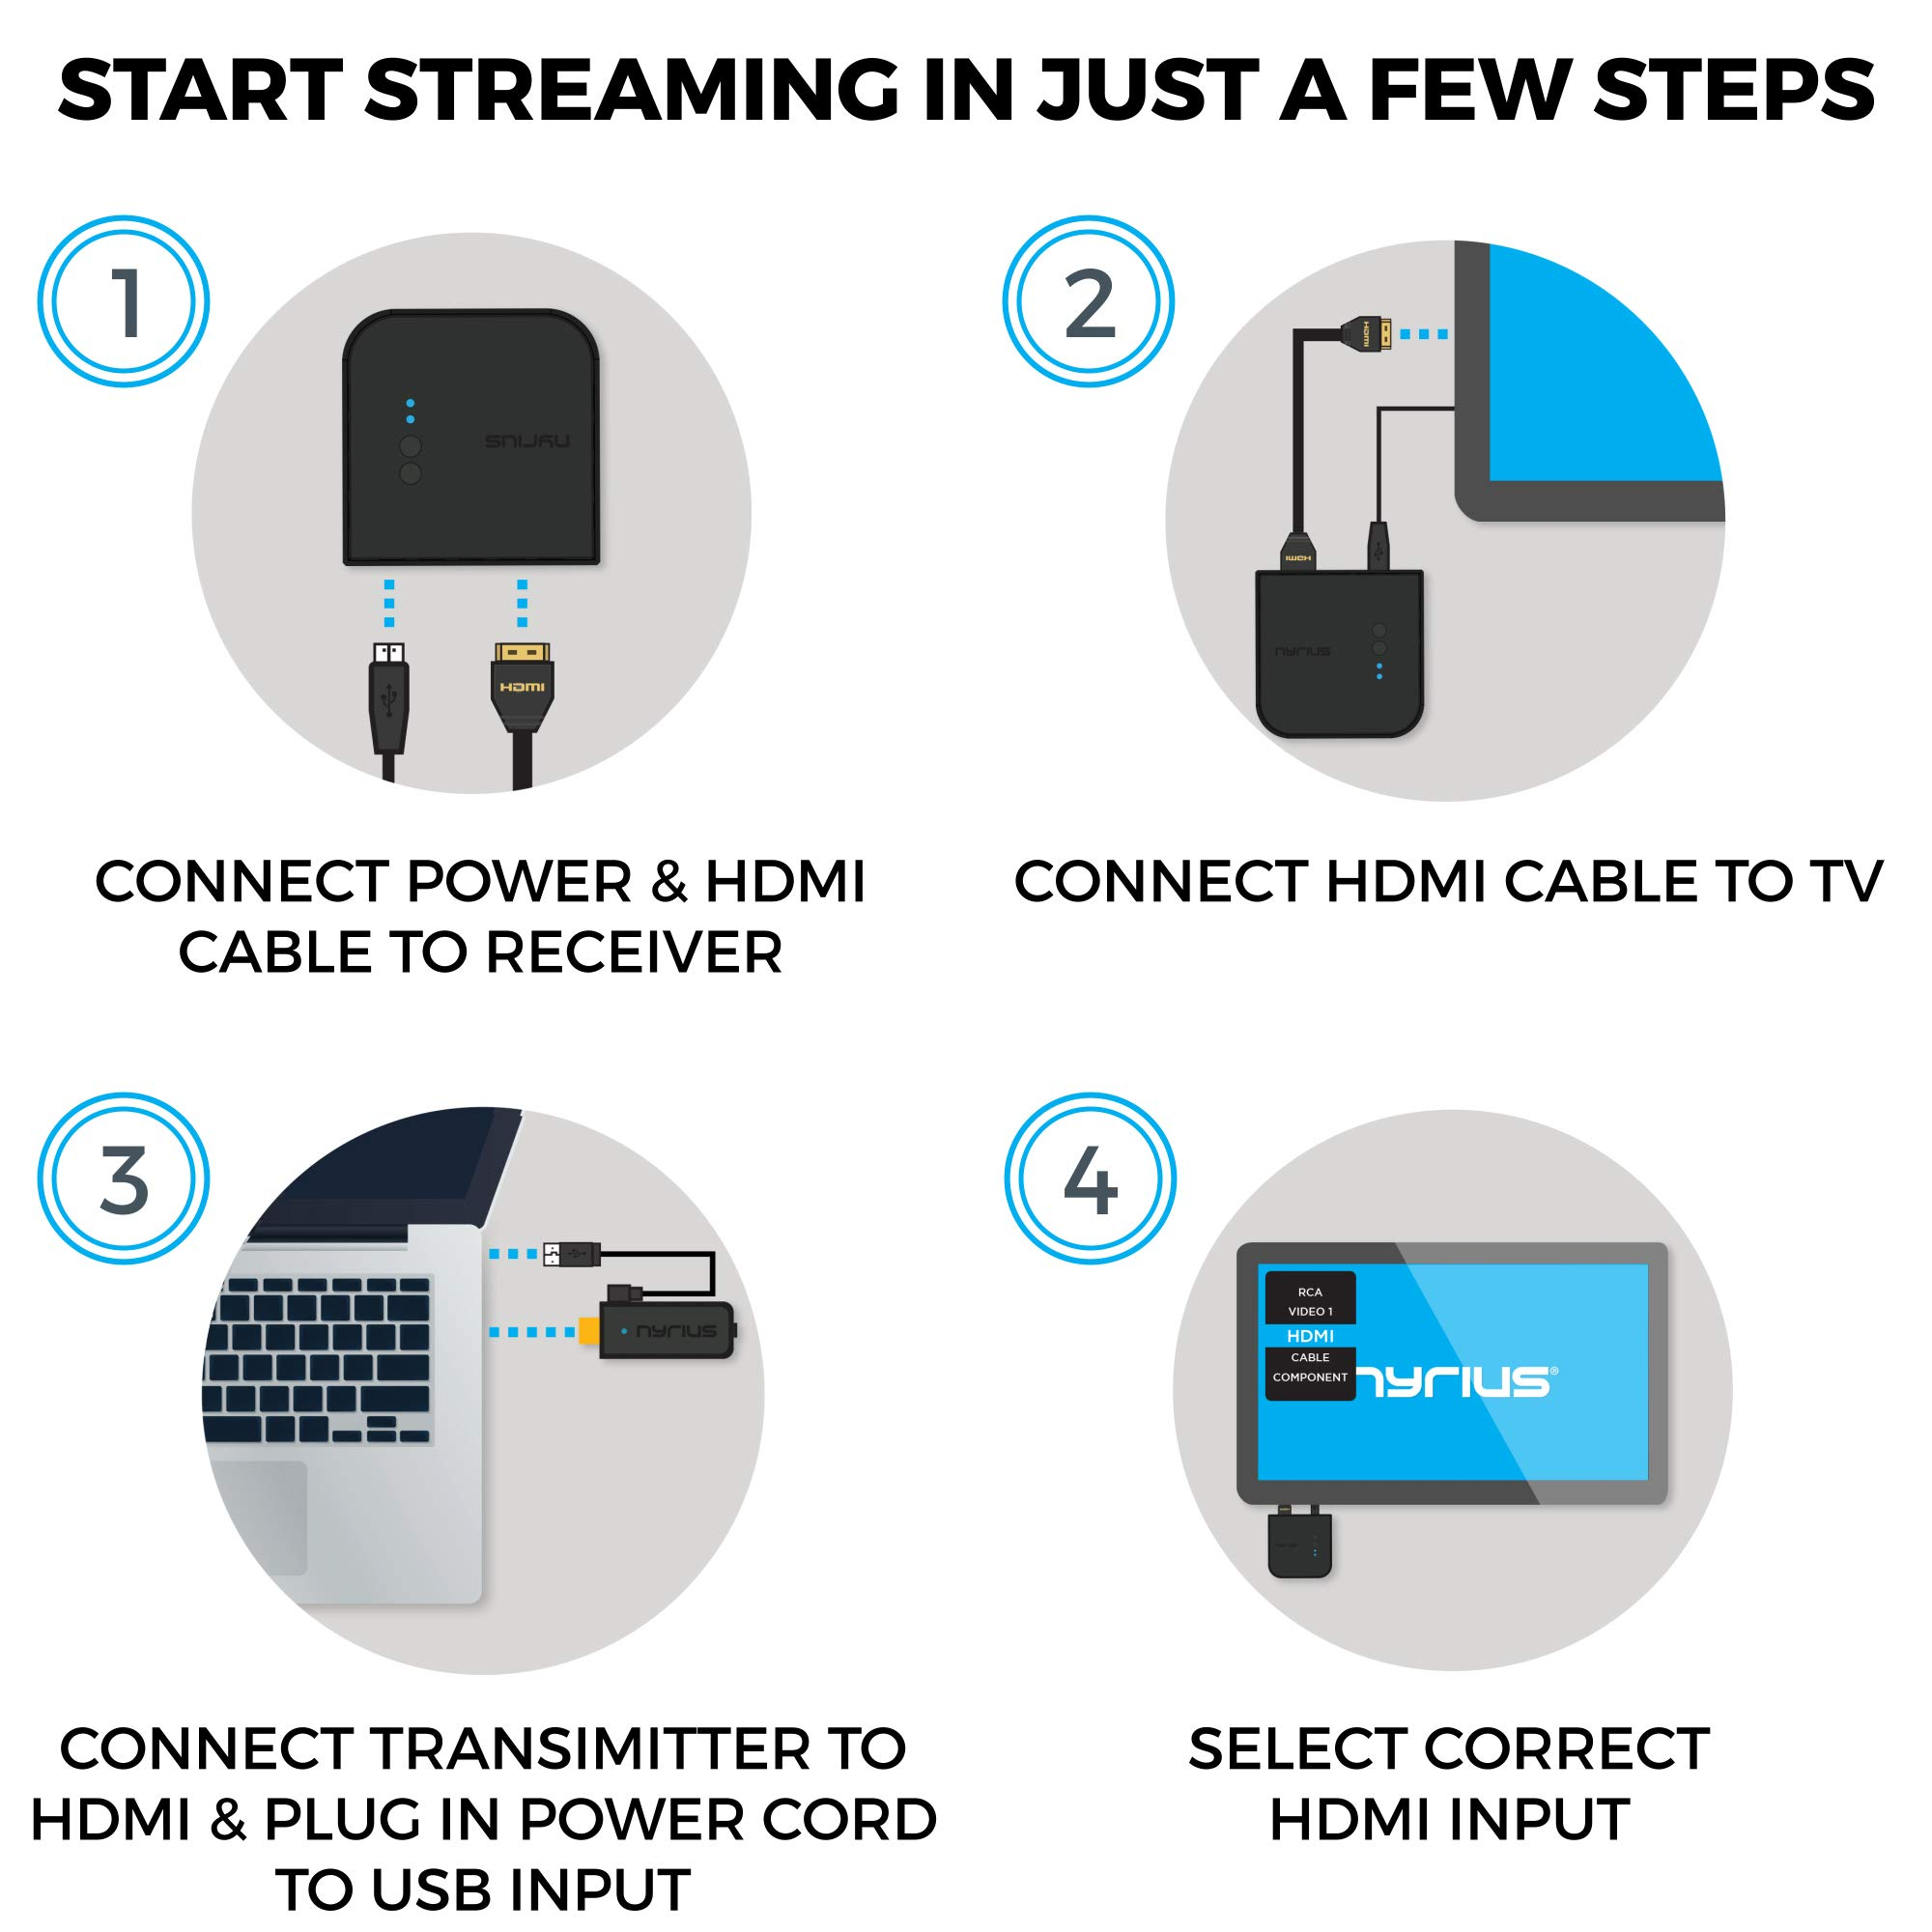 Nyrius Aries Prime Wireless Video HDMI Transmitter & Receiver for Streaming HD 1080p 3D Video & Digital Audio from Laptop, PC, Cable, Netflix, YouTube, PS4, Xbox One to HDTV/Projector (NPCS549) by Nyrius (Image #6)